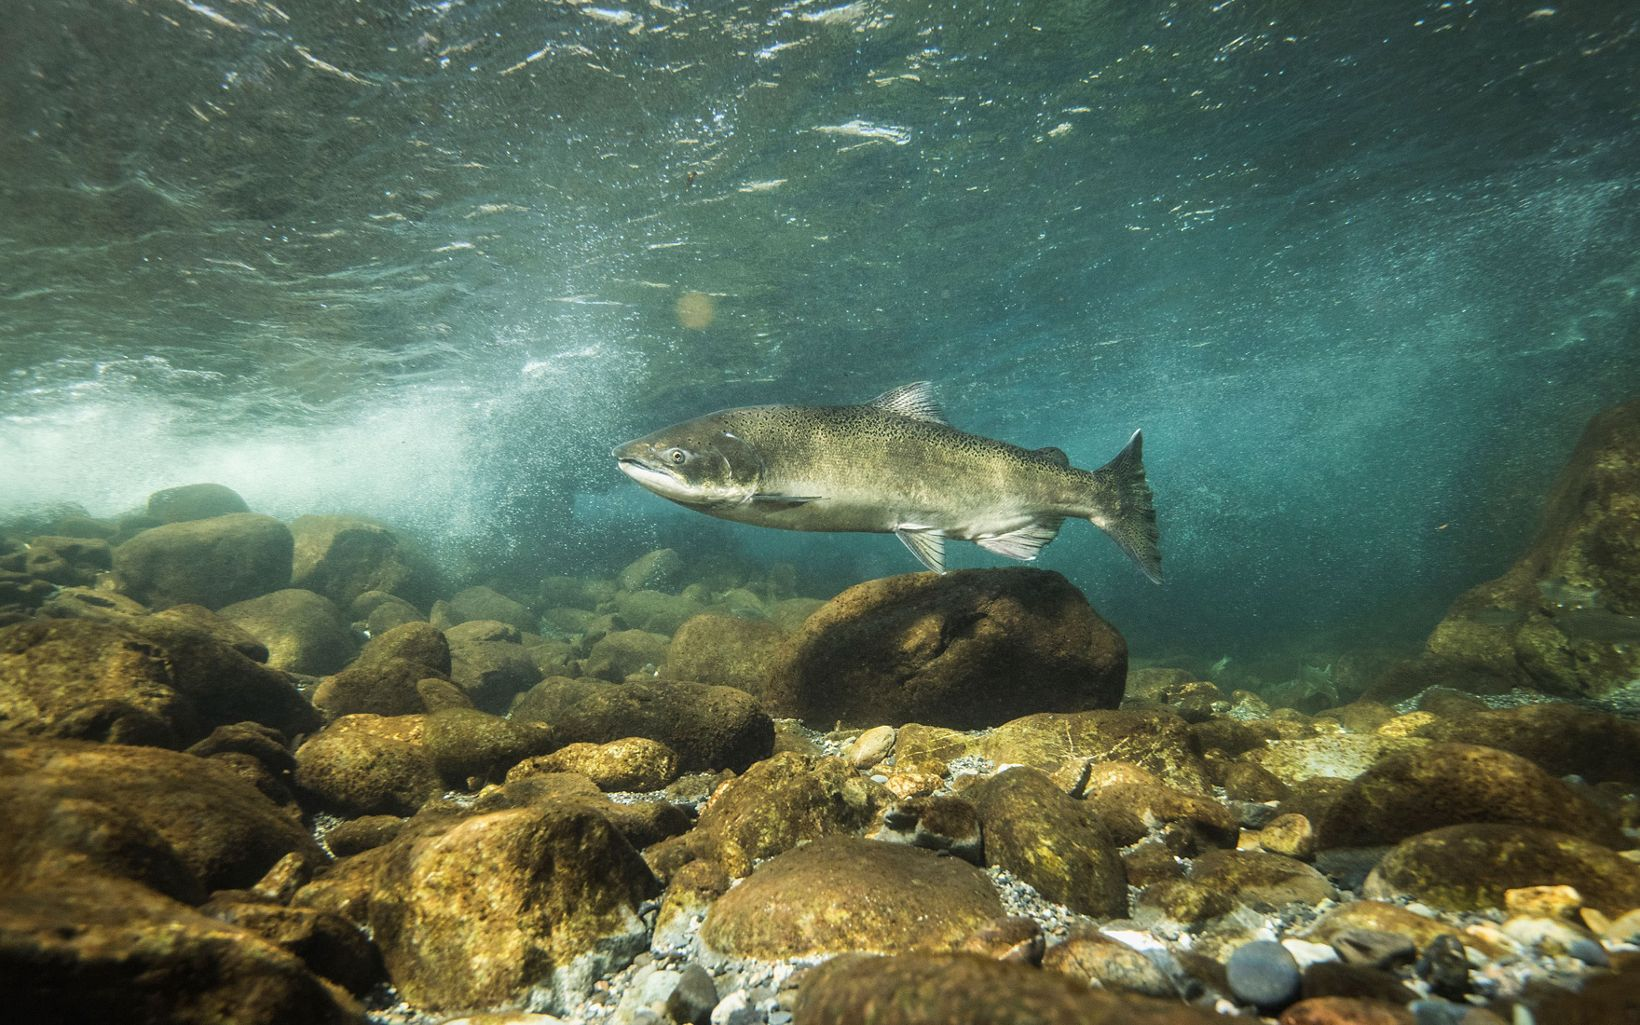 underwater view of a salmon swimming over rocks